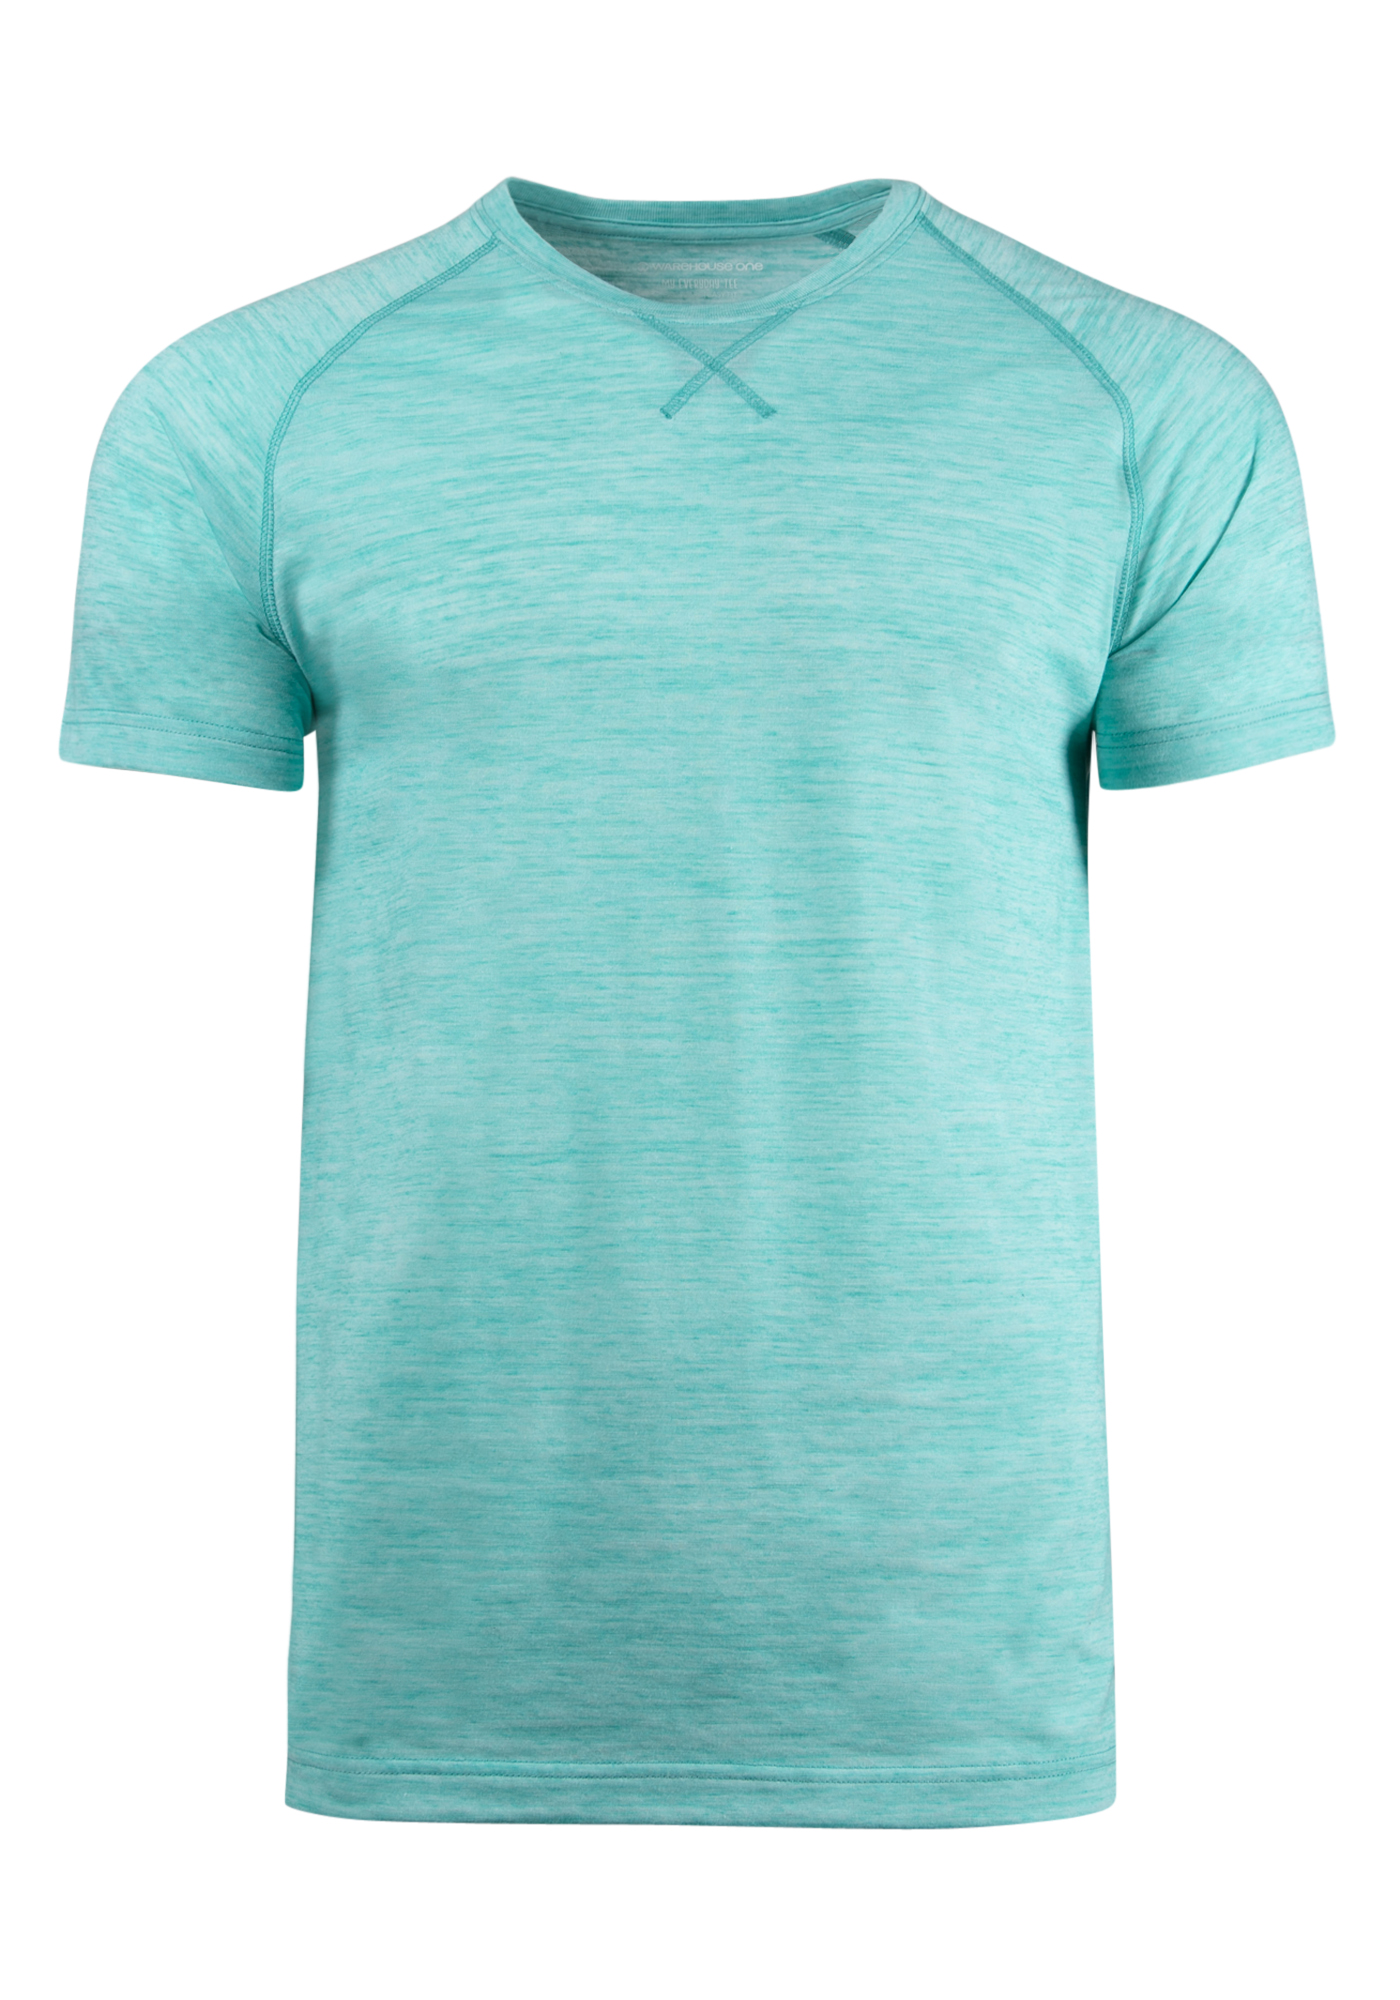 Men's Everyday Crew Neck Tee, AQUA GREEN, hi-res